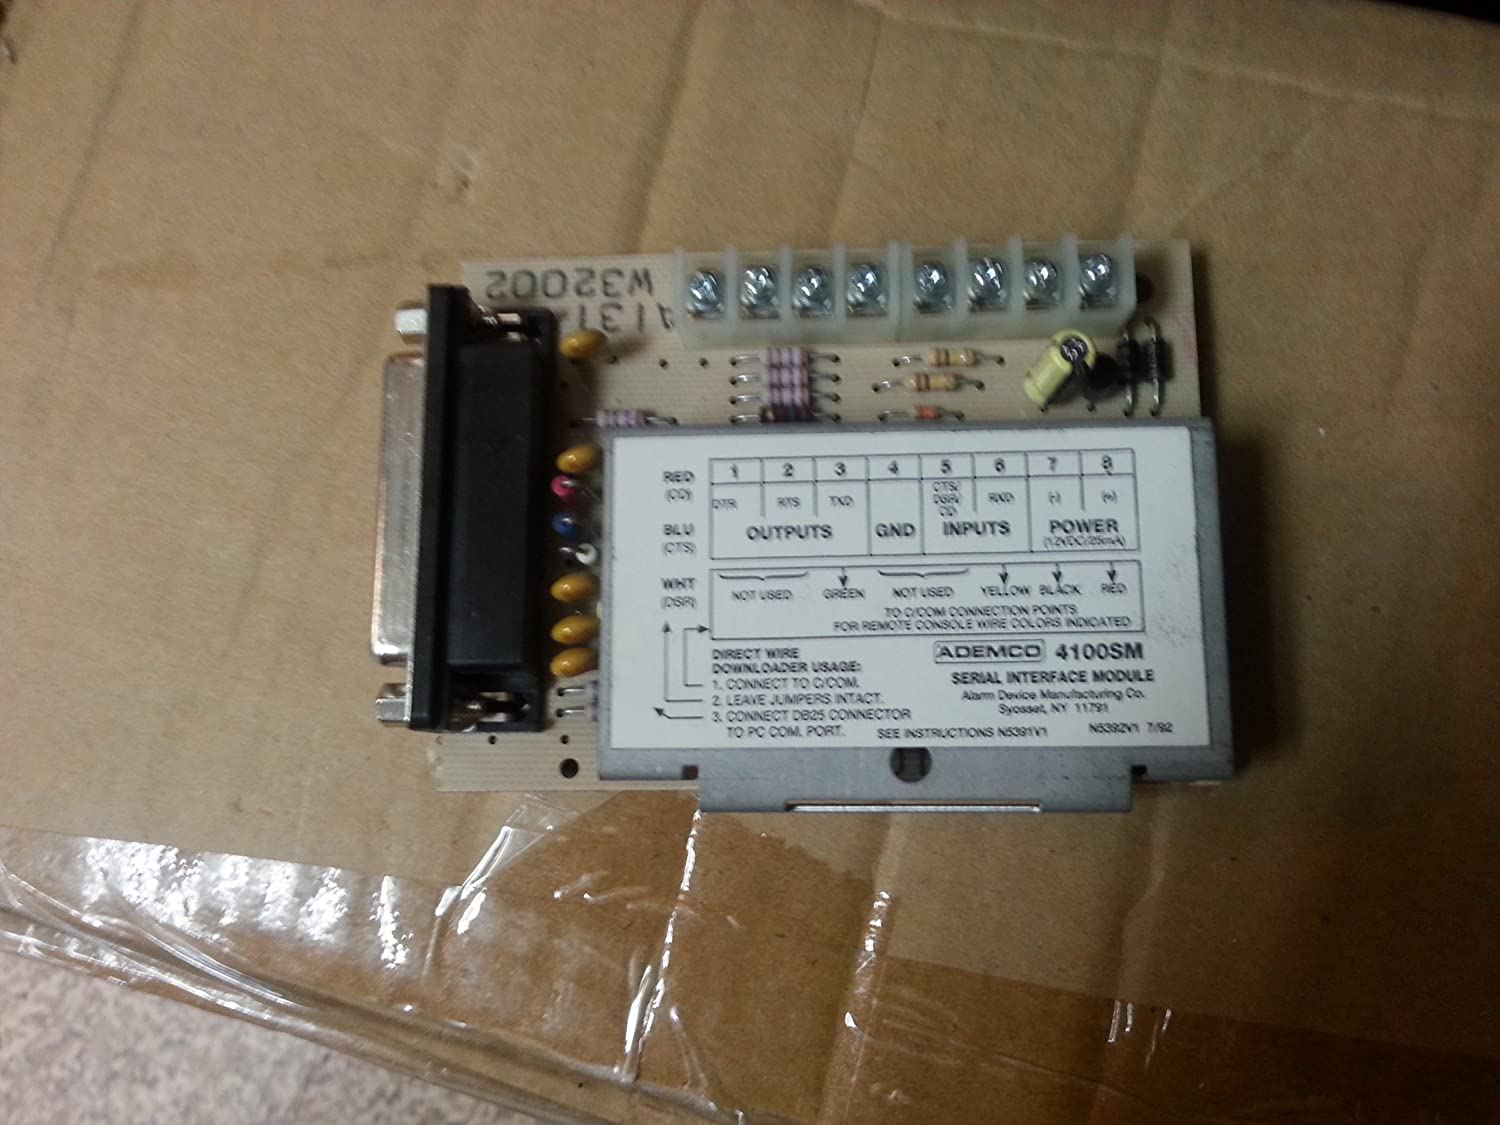 Honeywell Ademco 4100SM Serial Interface Module